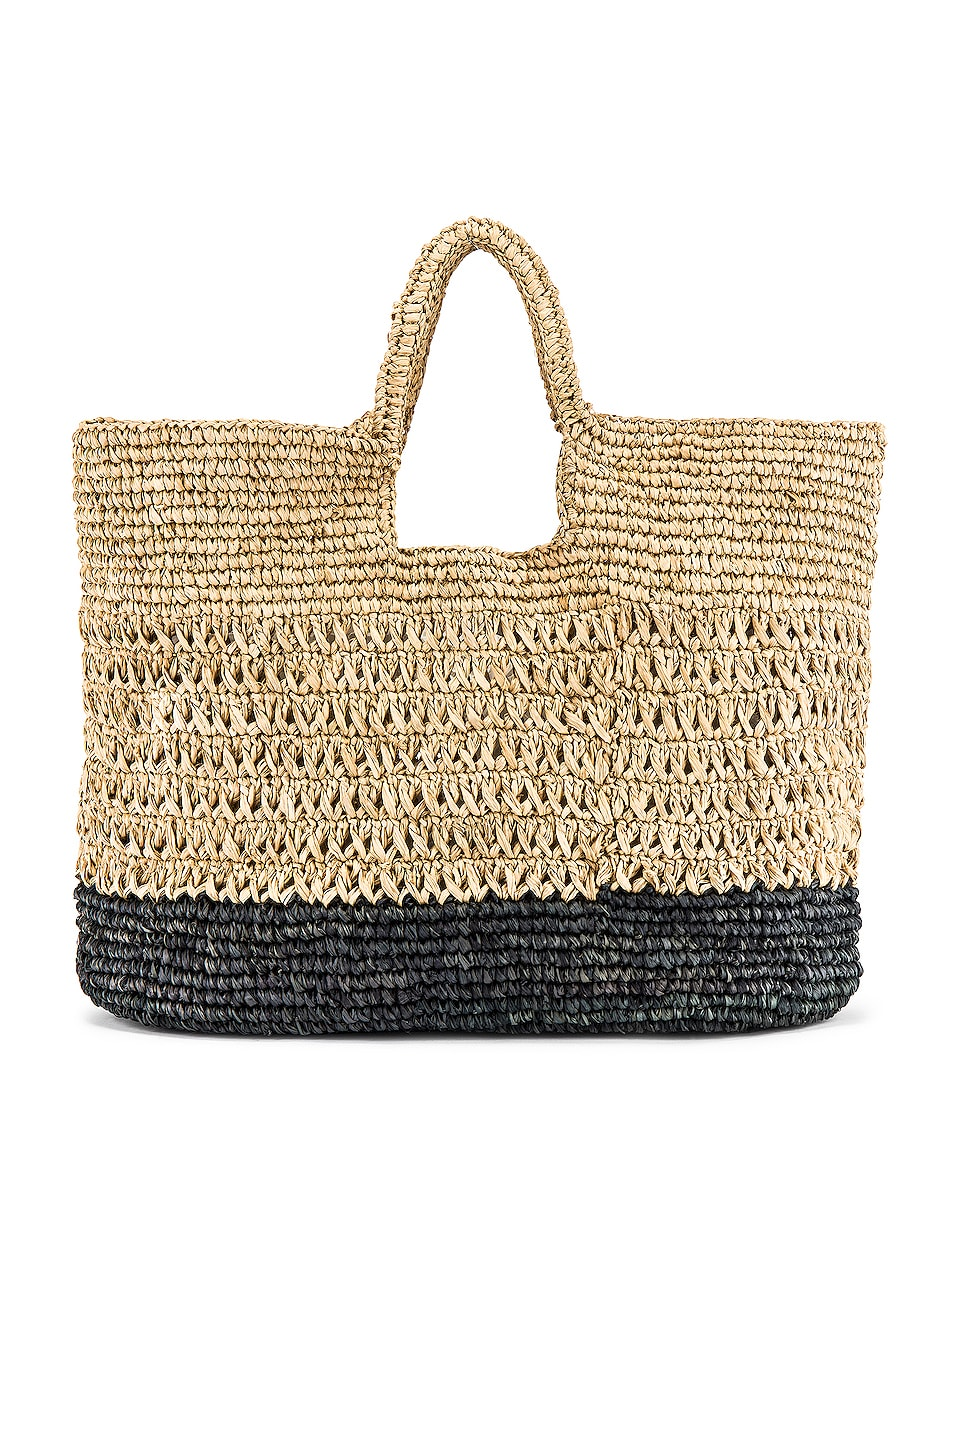 L*SPACE Milano Raffia Bag in Black